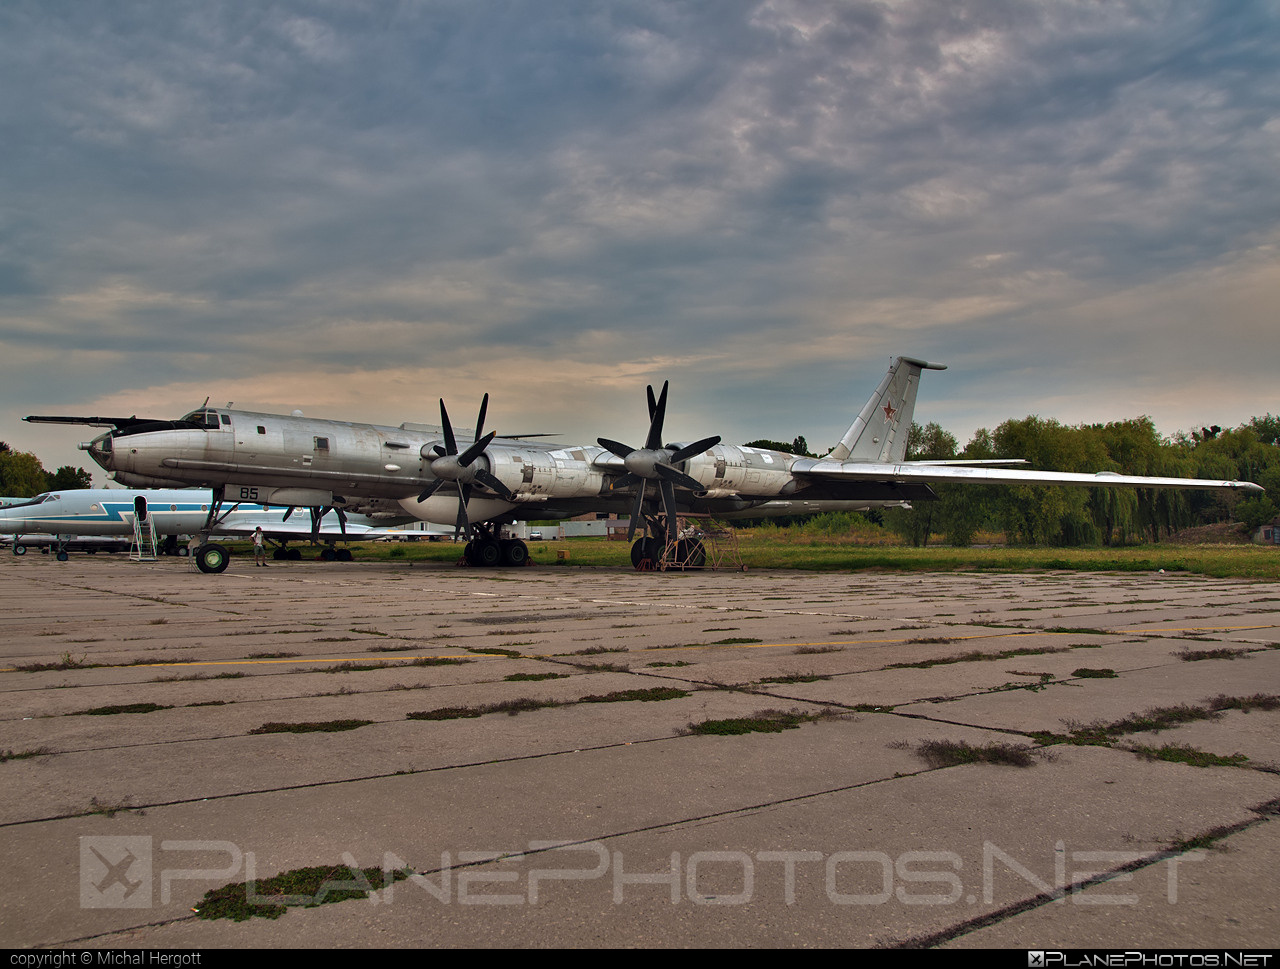 Tupolev Tu-142MZ - 85 operated by Povitryani Syly Ukrayiny (Ukrainian Air Force) #povitryanisylyukrayiny #tu142 #tu142mz #tupolev #ukrainianairforce